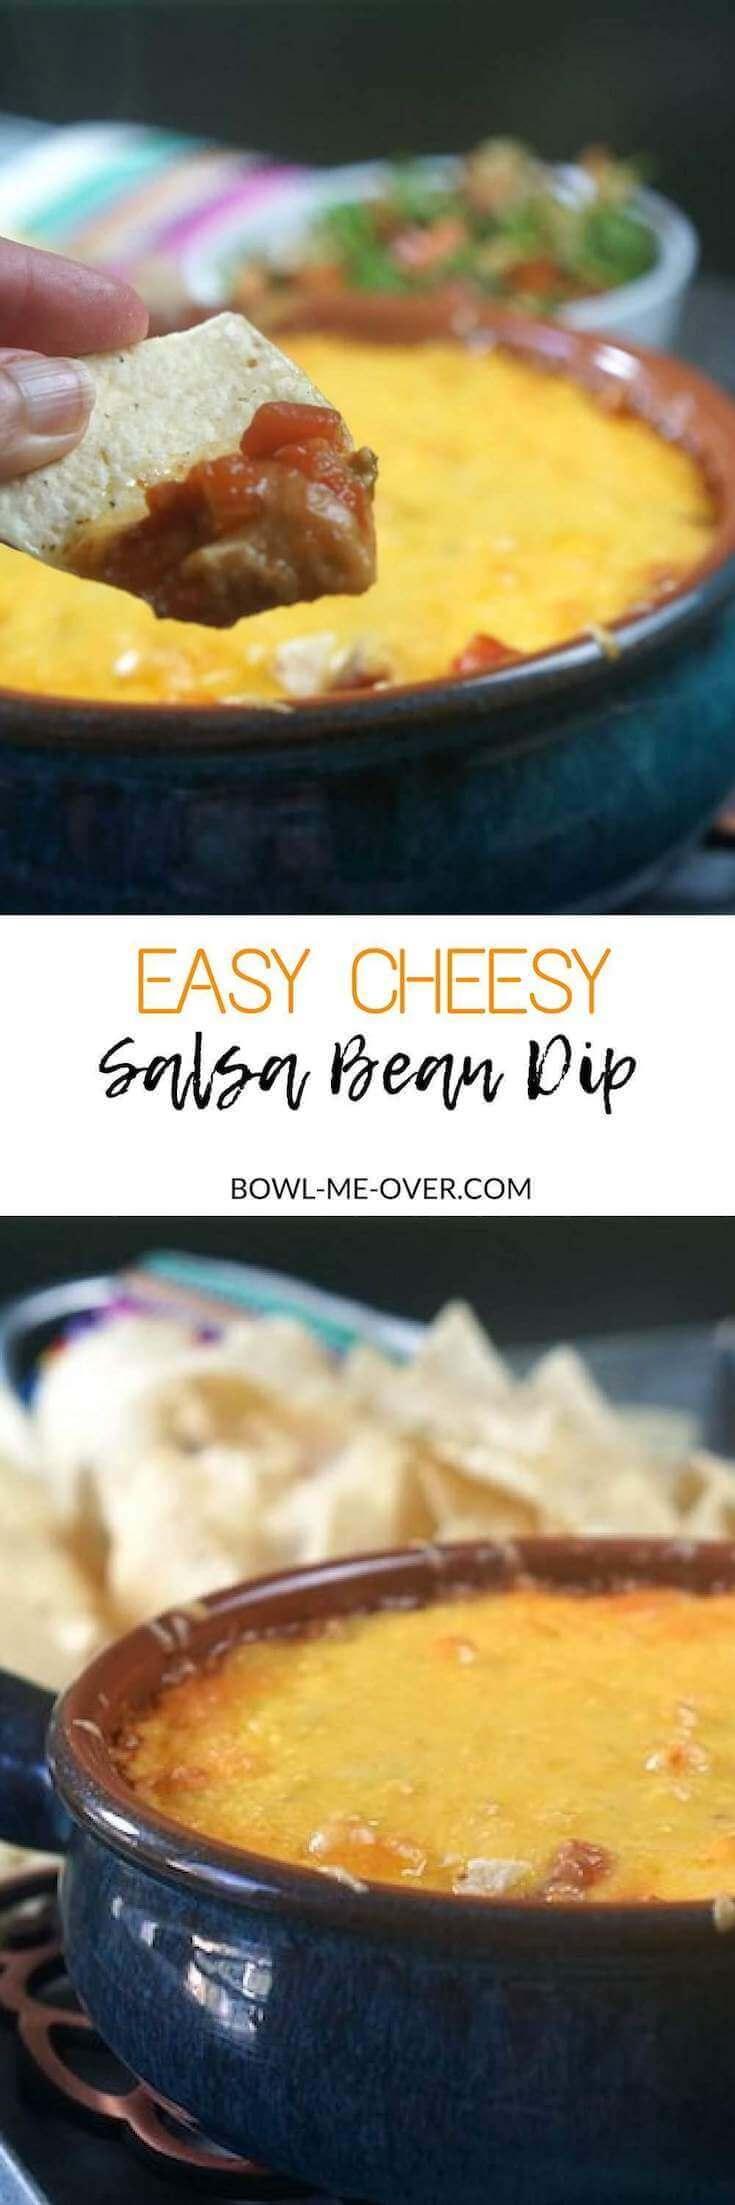 A refried Bean Dip Recipe that is only three ingredients. It's been baked in a blue ceramic bowl. There are piled of tortilla chips surrounding the tip.